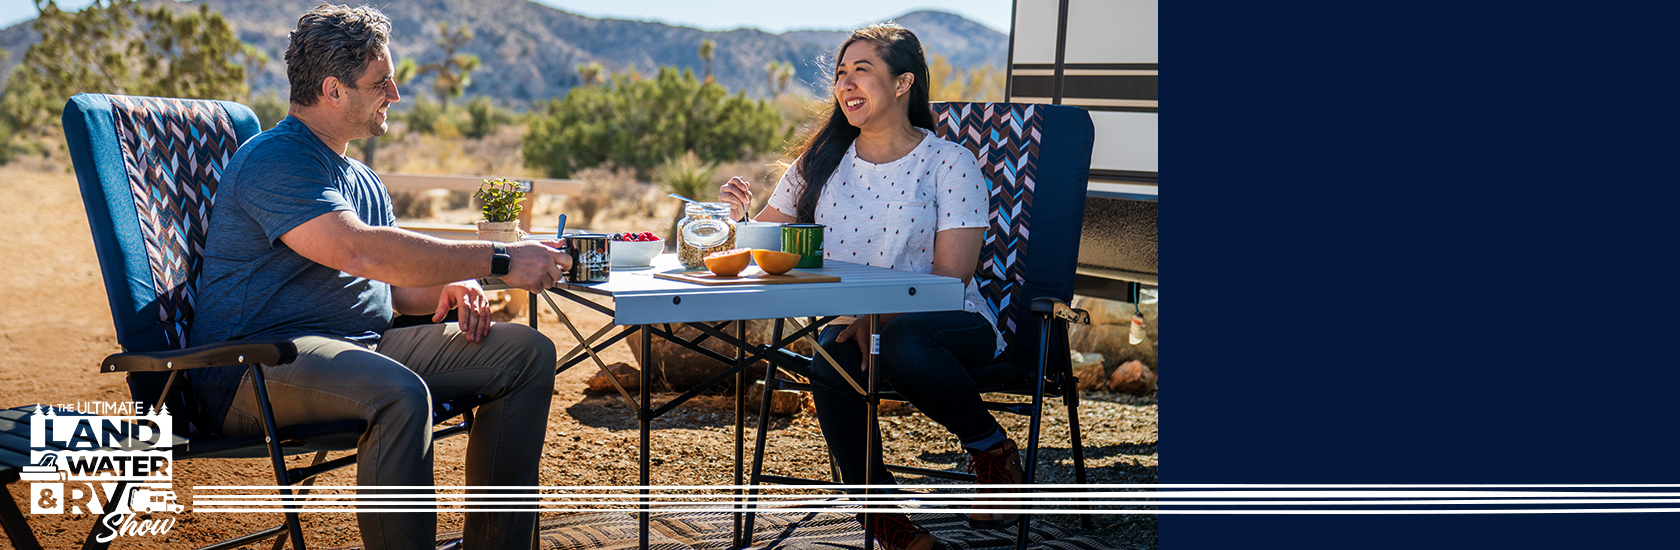 Lowest prices of the year on chairs, tables, patio mats & more outdoor furniture